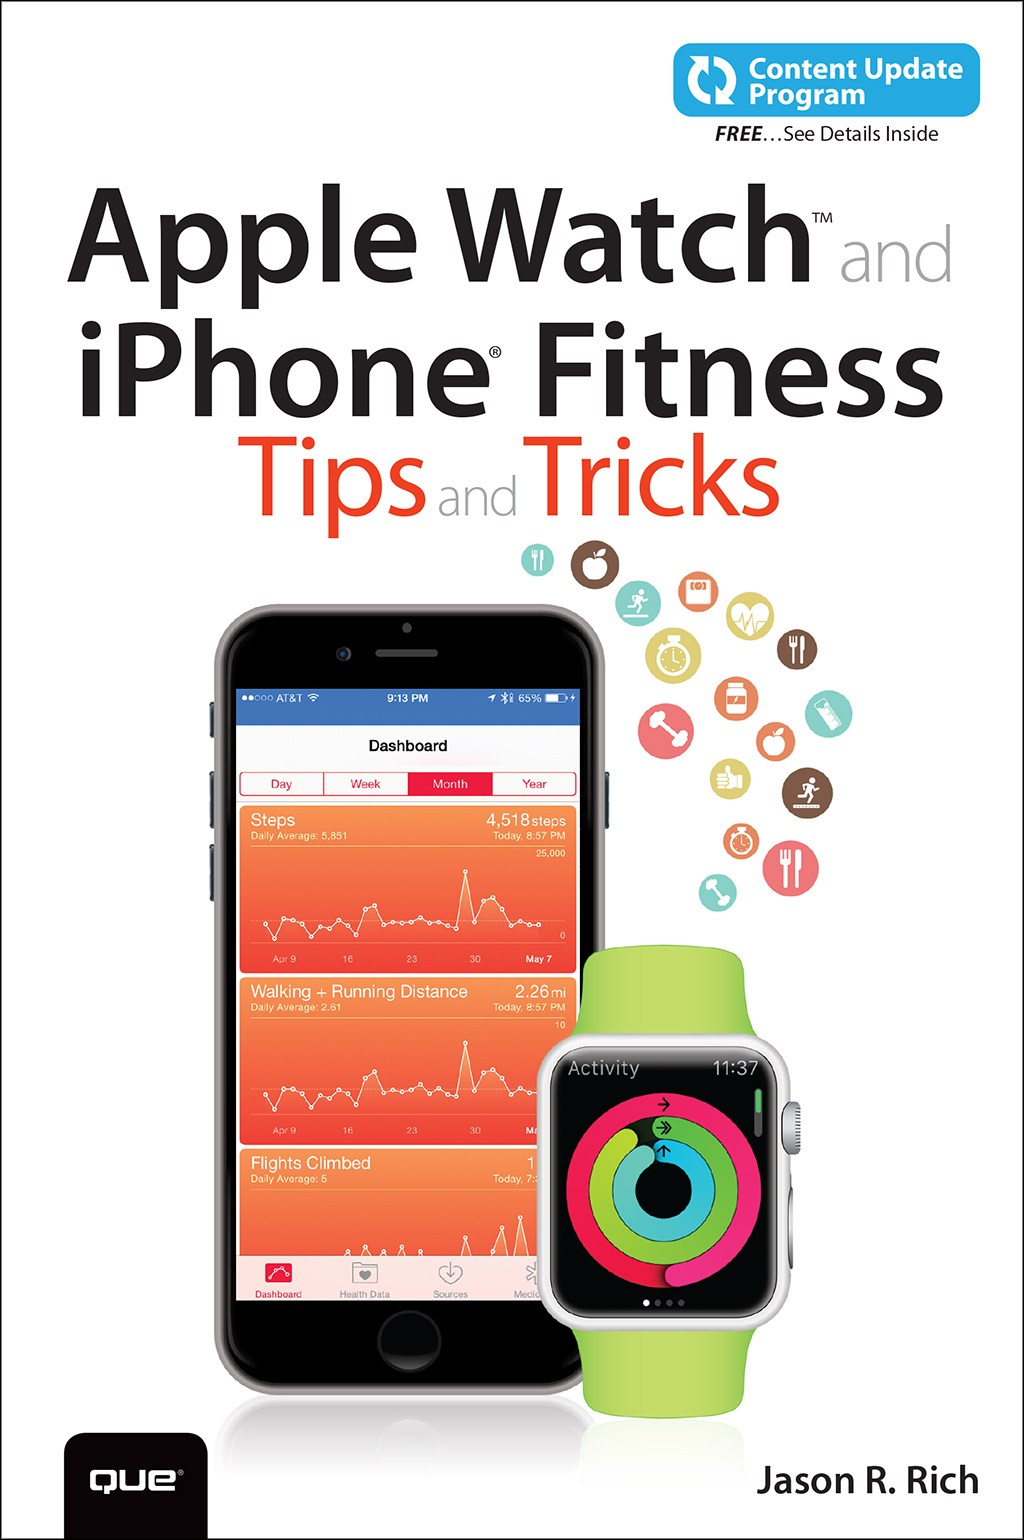 Apple Watch and iPhone Fitness Tips and Tricks, (includes Content Update Program)